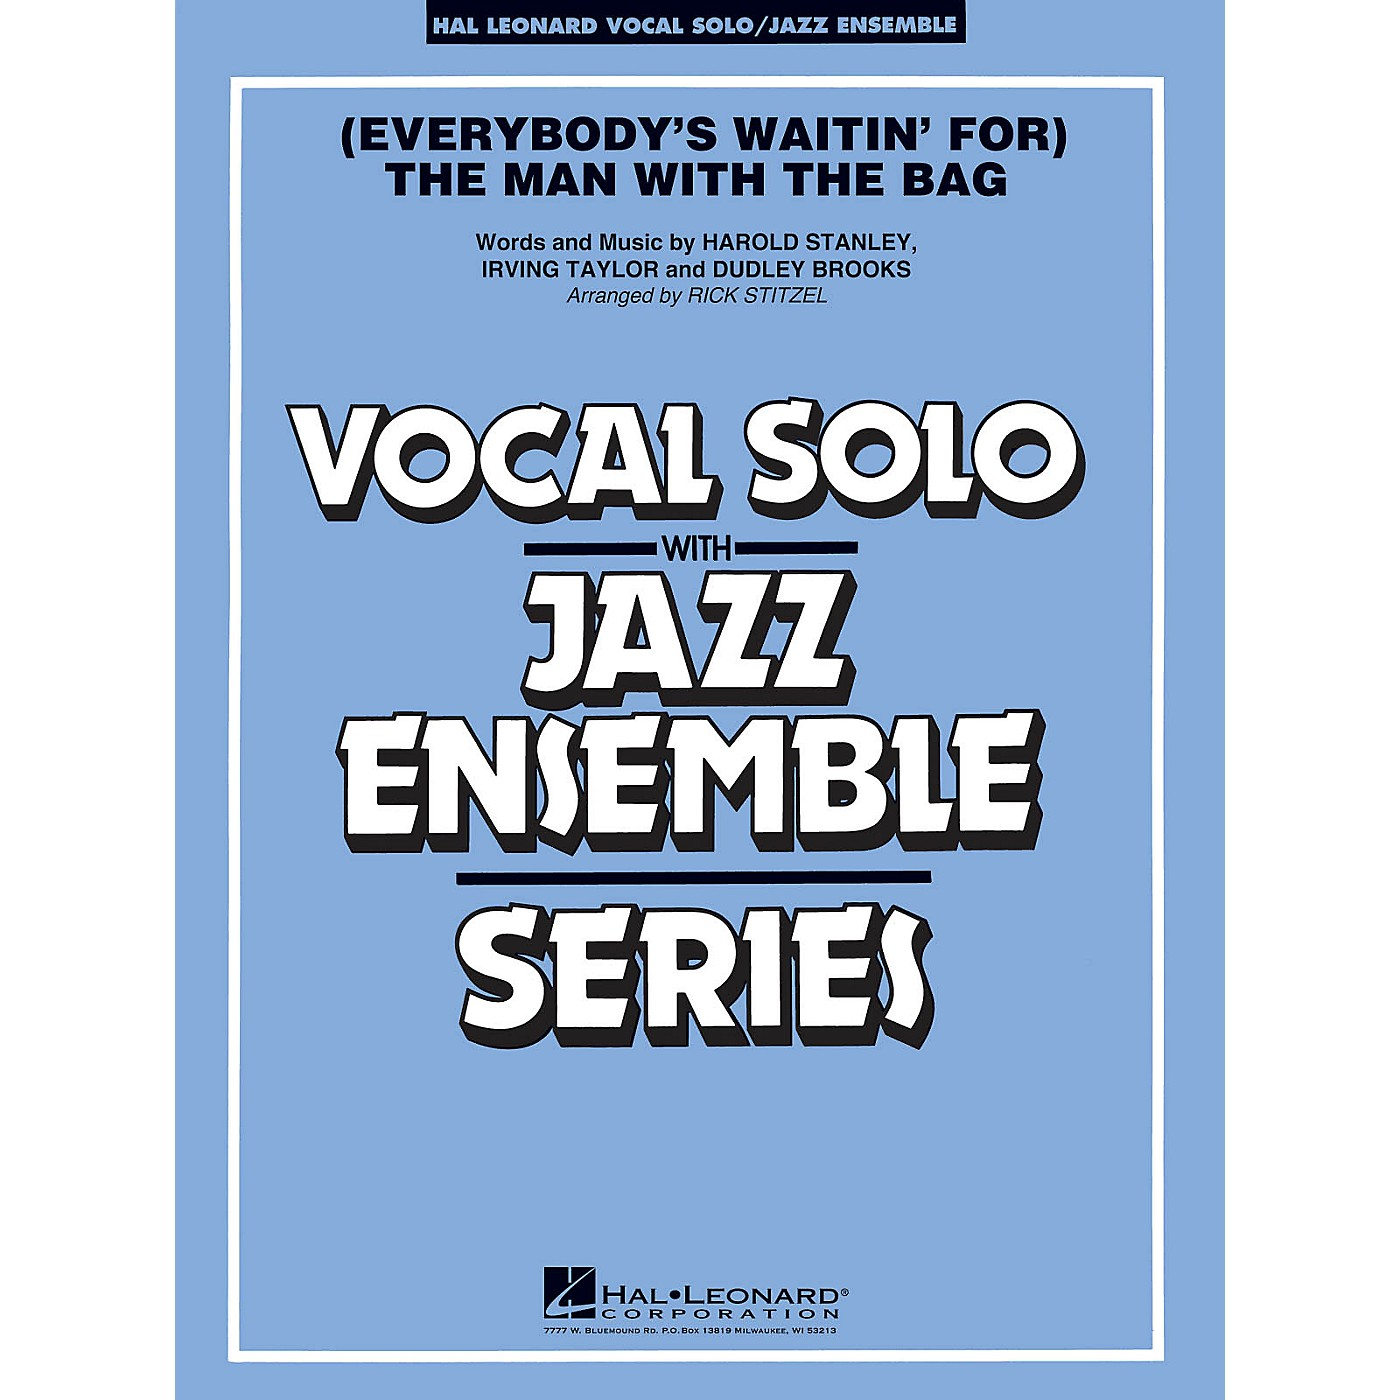 Hal Leonard (Everybody's Waitin' for) The Man with the Bag (Key: A-flat) Jazz Band Level 3-4 by Harold Stanley thumbnail